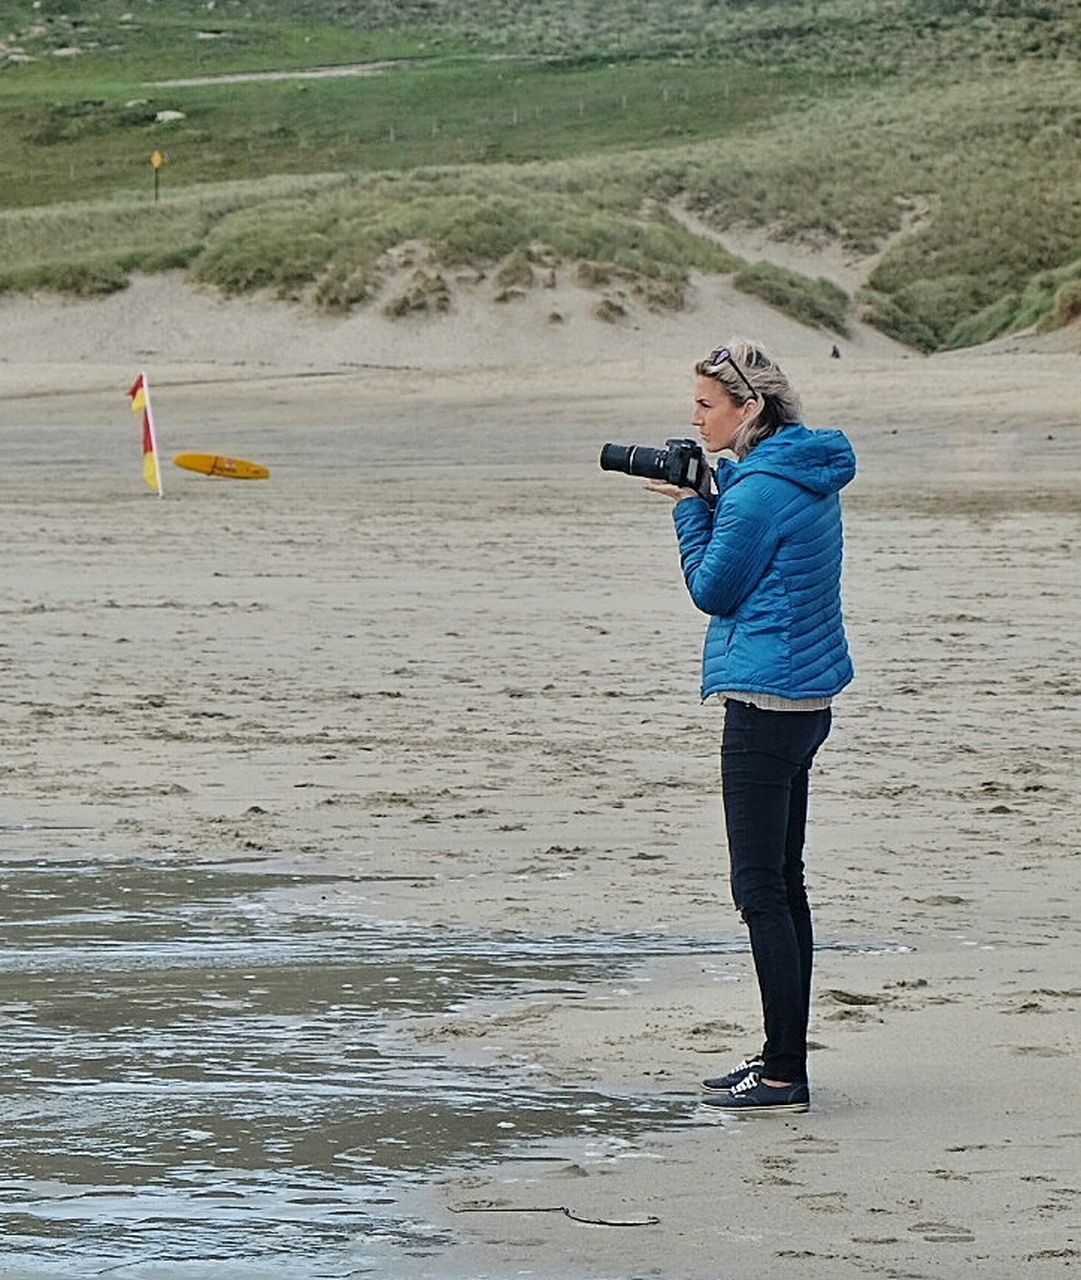 one person, beach, standing, only women, sand, one woman only, people, full length, leisure activity, vacations, water, adult, adults only, nature, photographing, outdoors, photography themes, sea, day, women, real people, camera - photographic equipment, young women, young adult, one young woman only